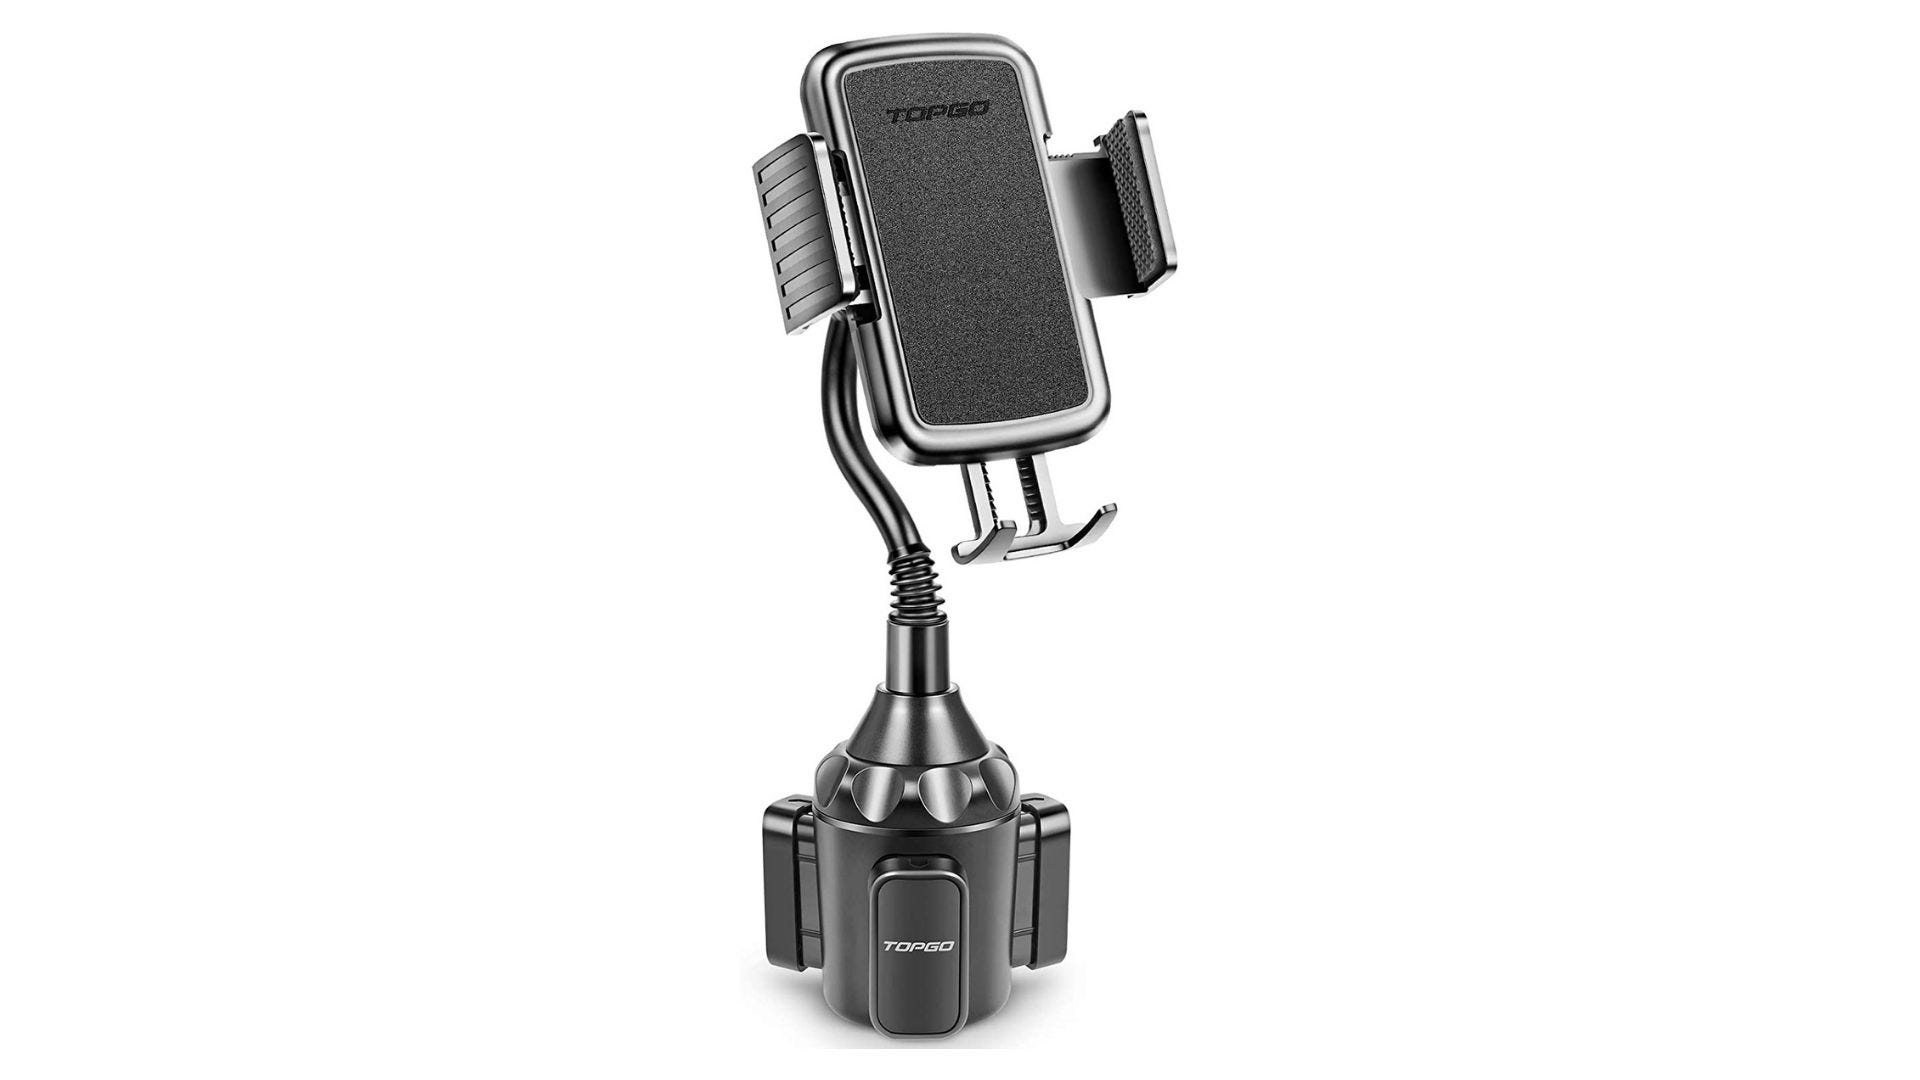 topgo cup holder phone mount for car